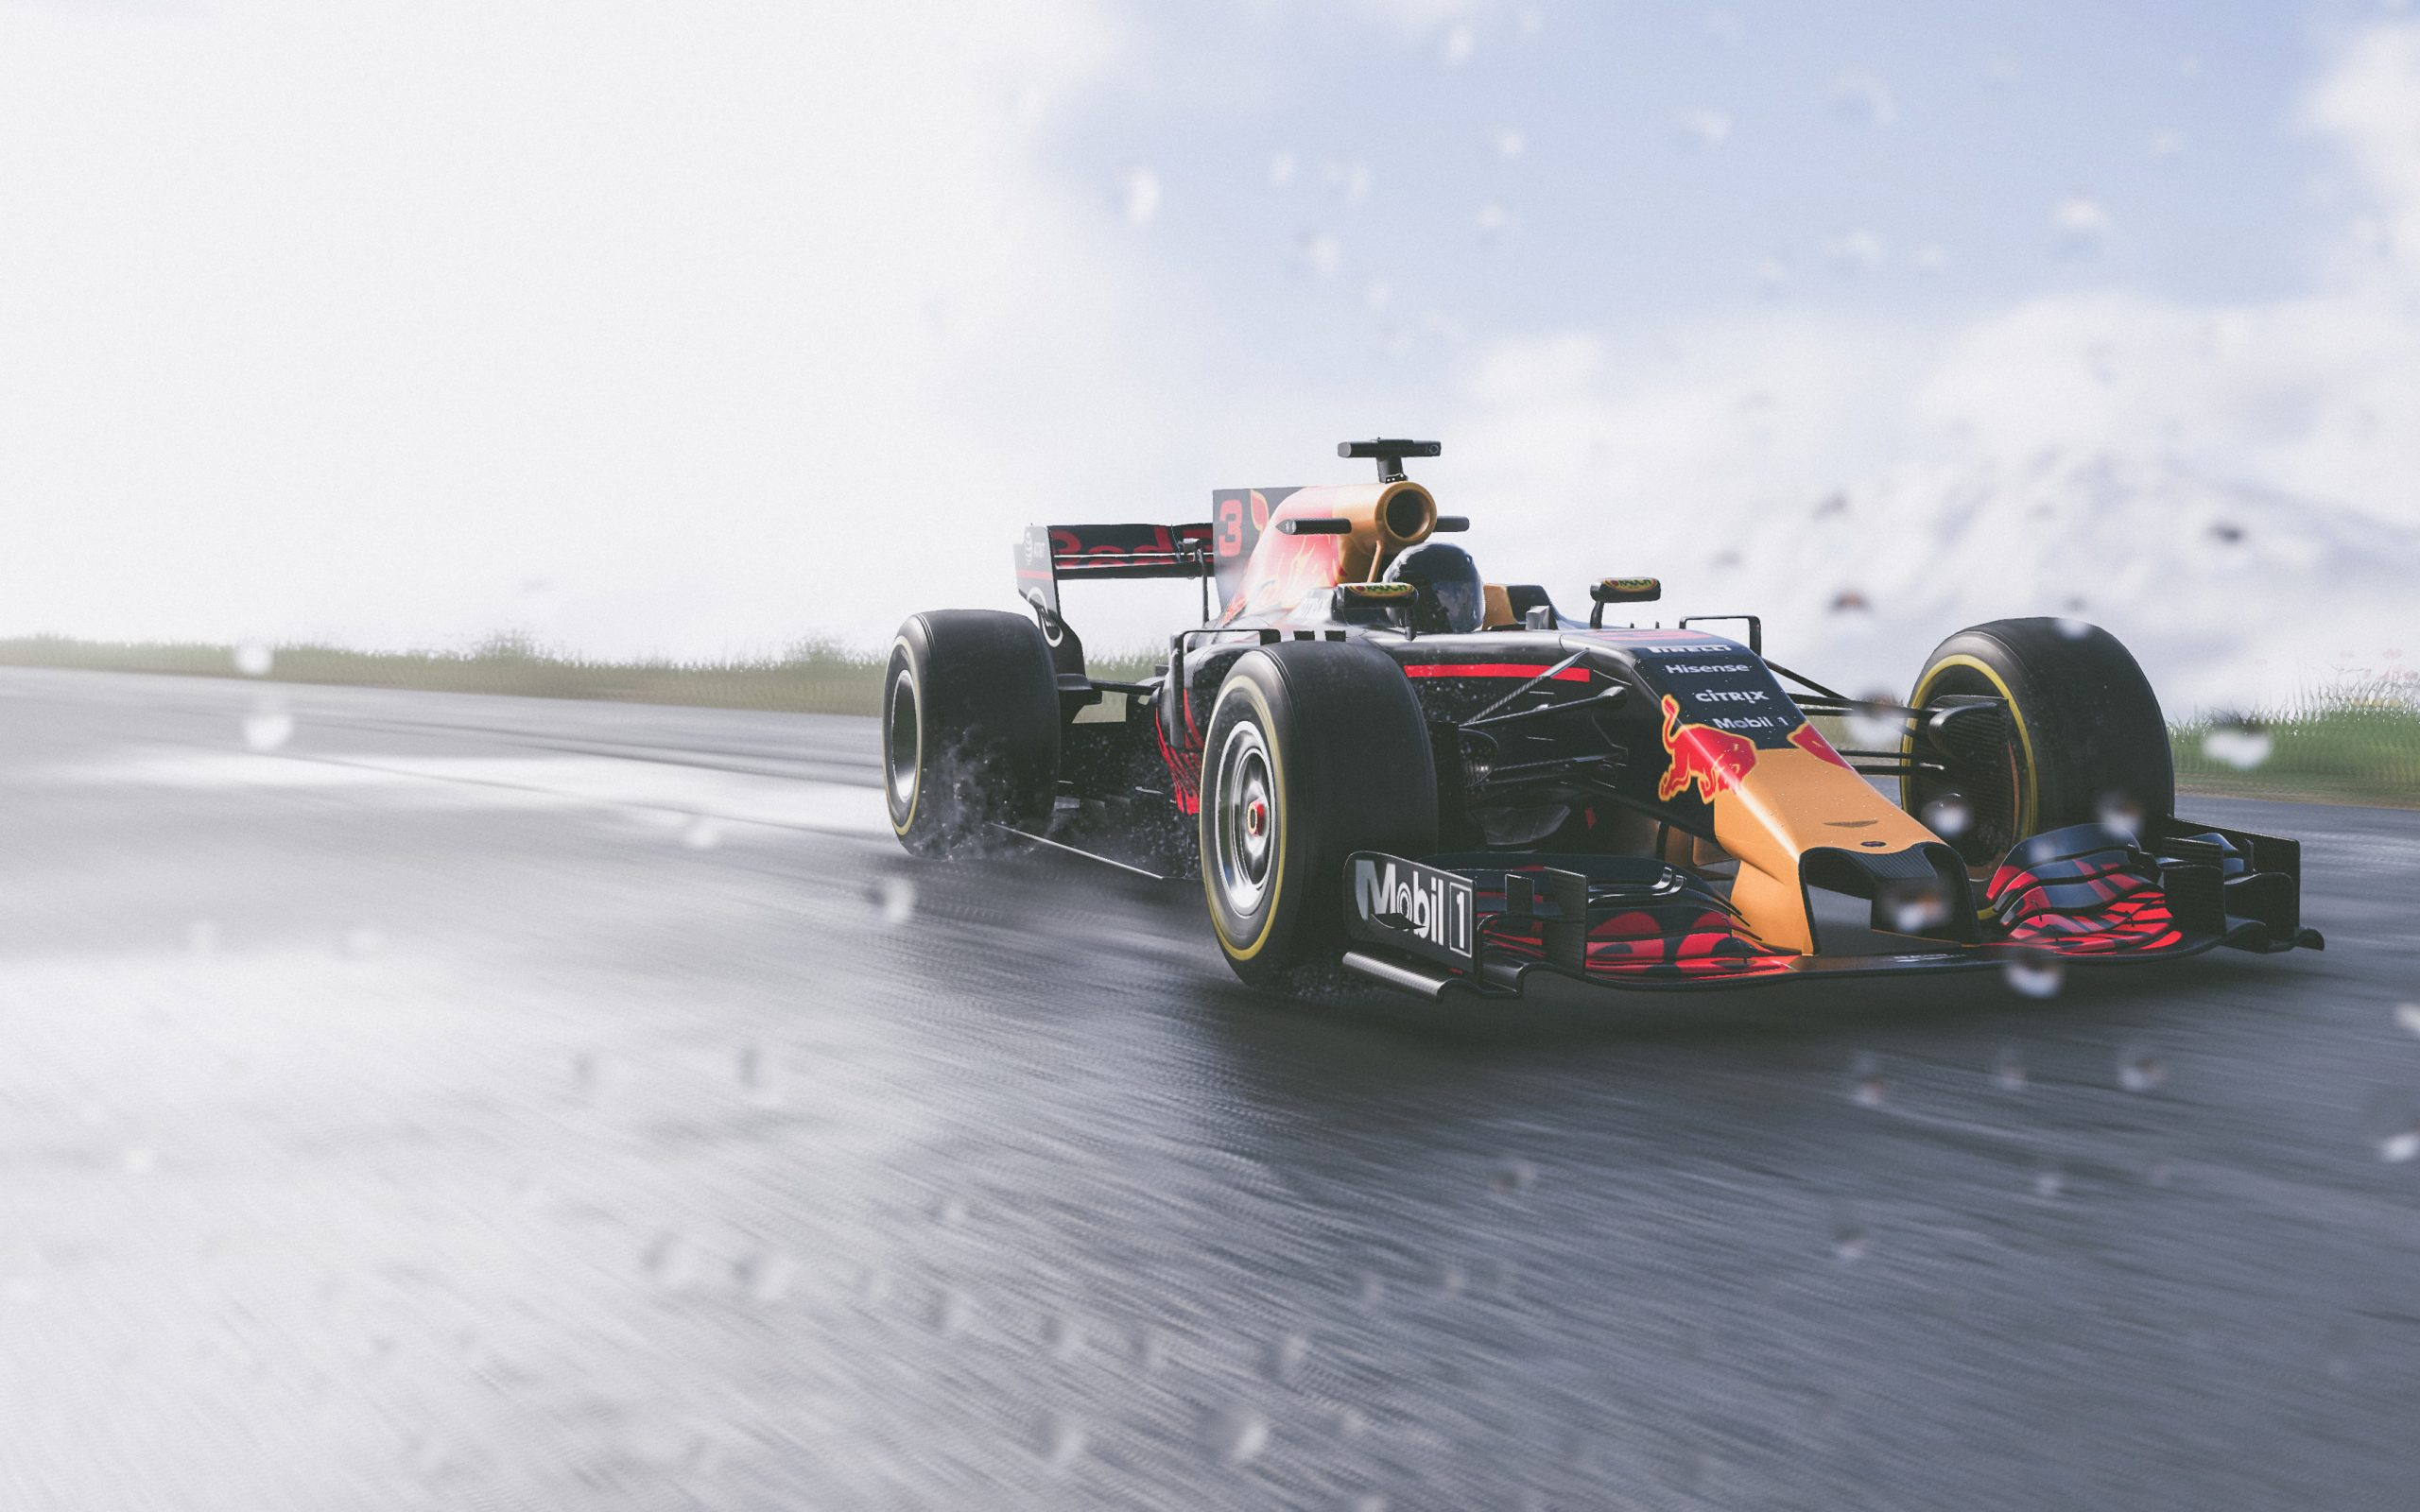 10 Latest Red Bull Racing Wallpaper Full Hd 1080p For Pc: The Crew 2 Red Bull F1 Car Game 4K Wallpaper